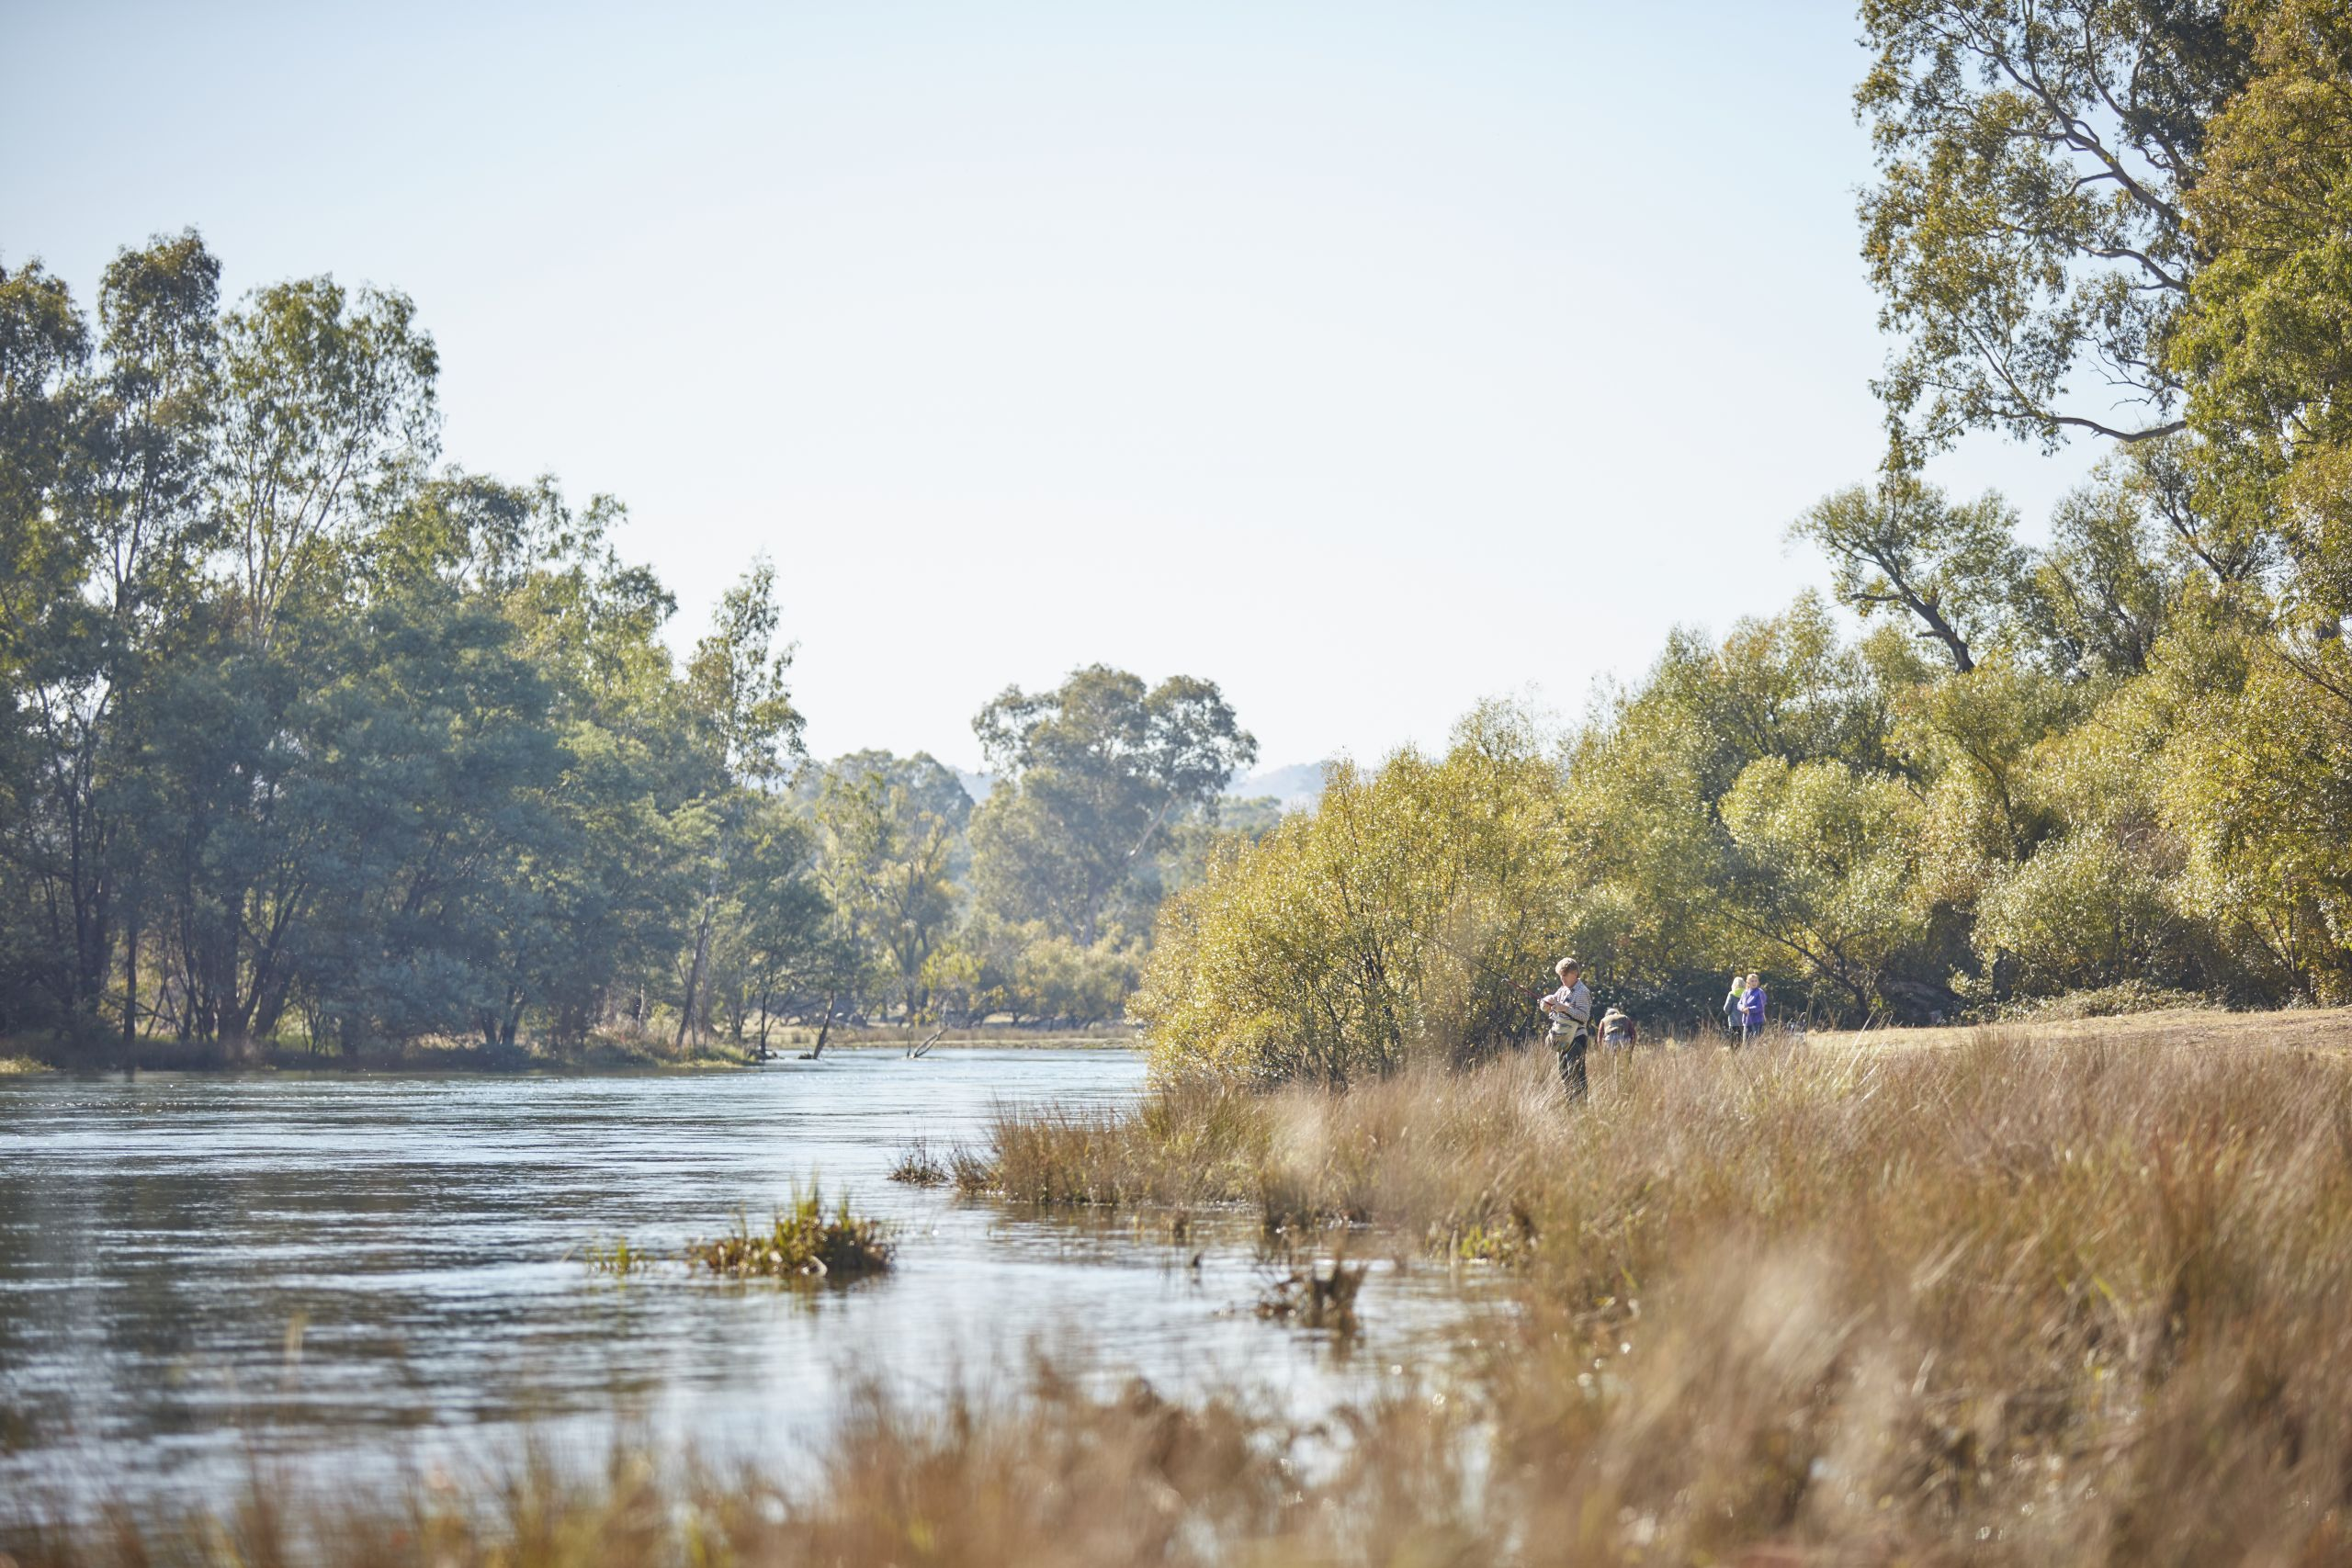 Rural scene of Goulburn river with people fishing